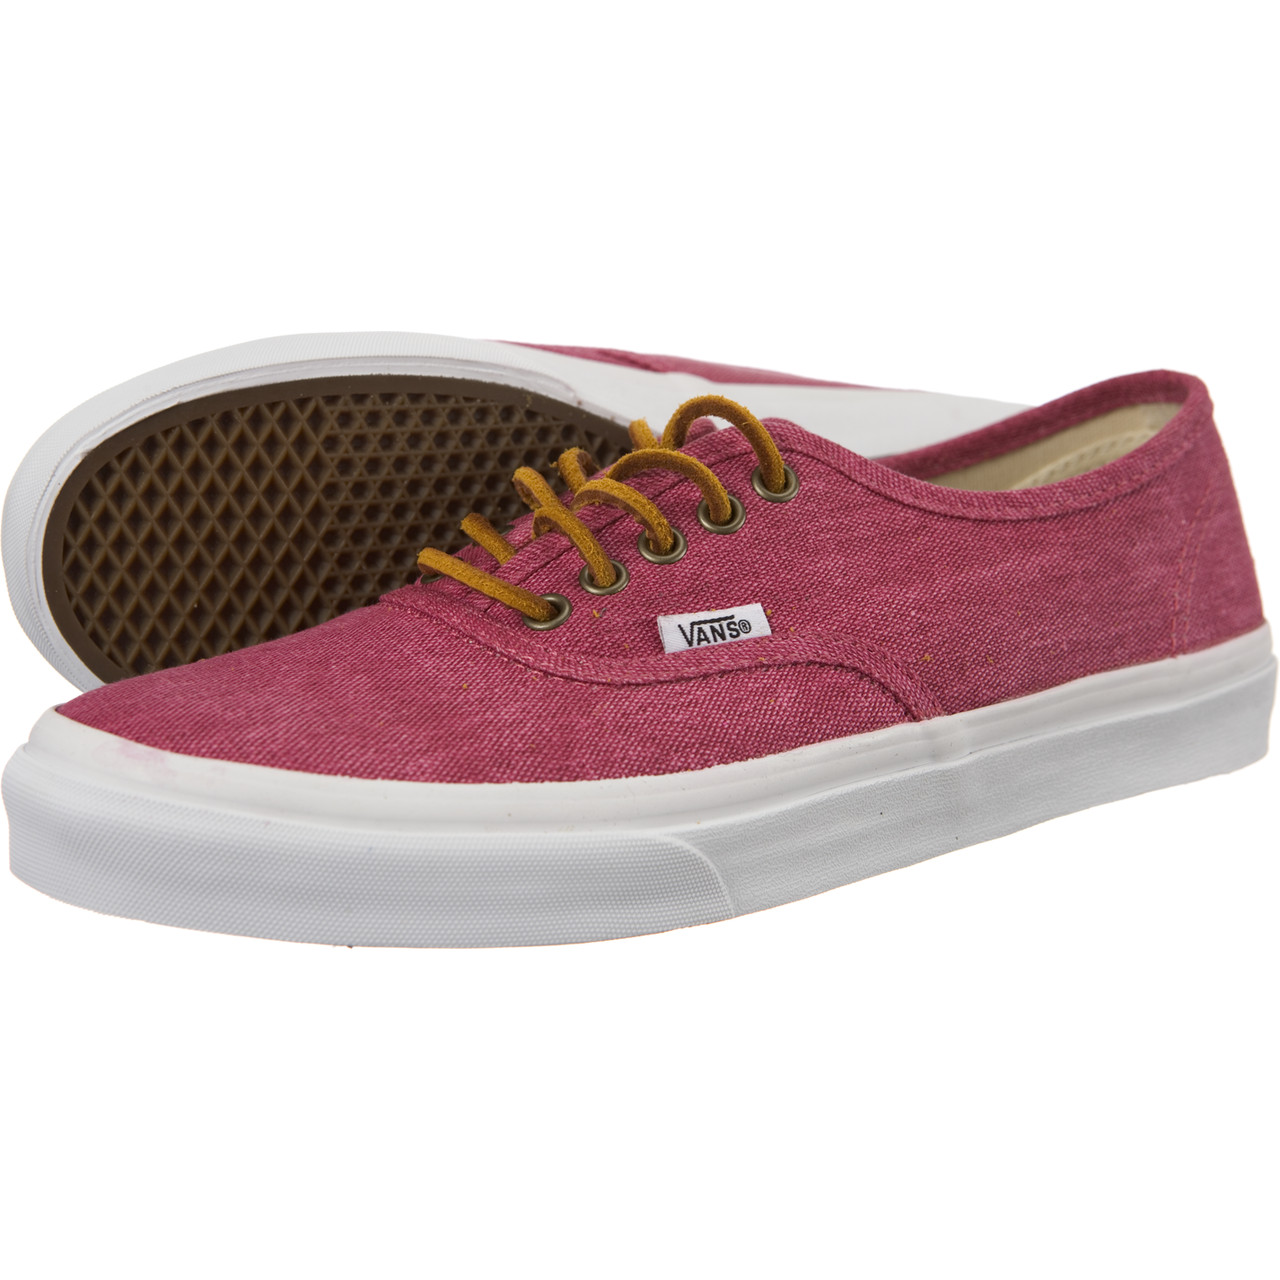 vans authentic sklep